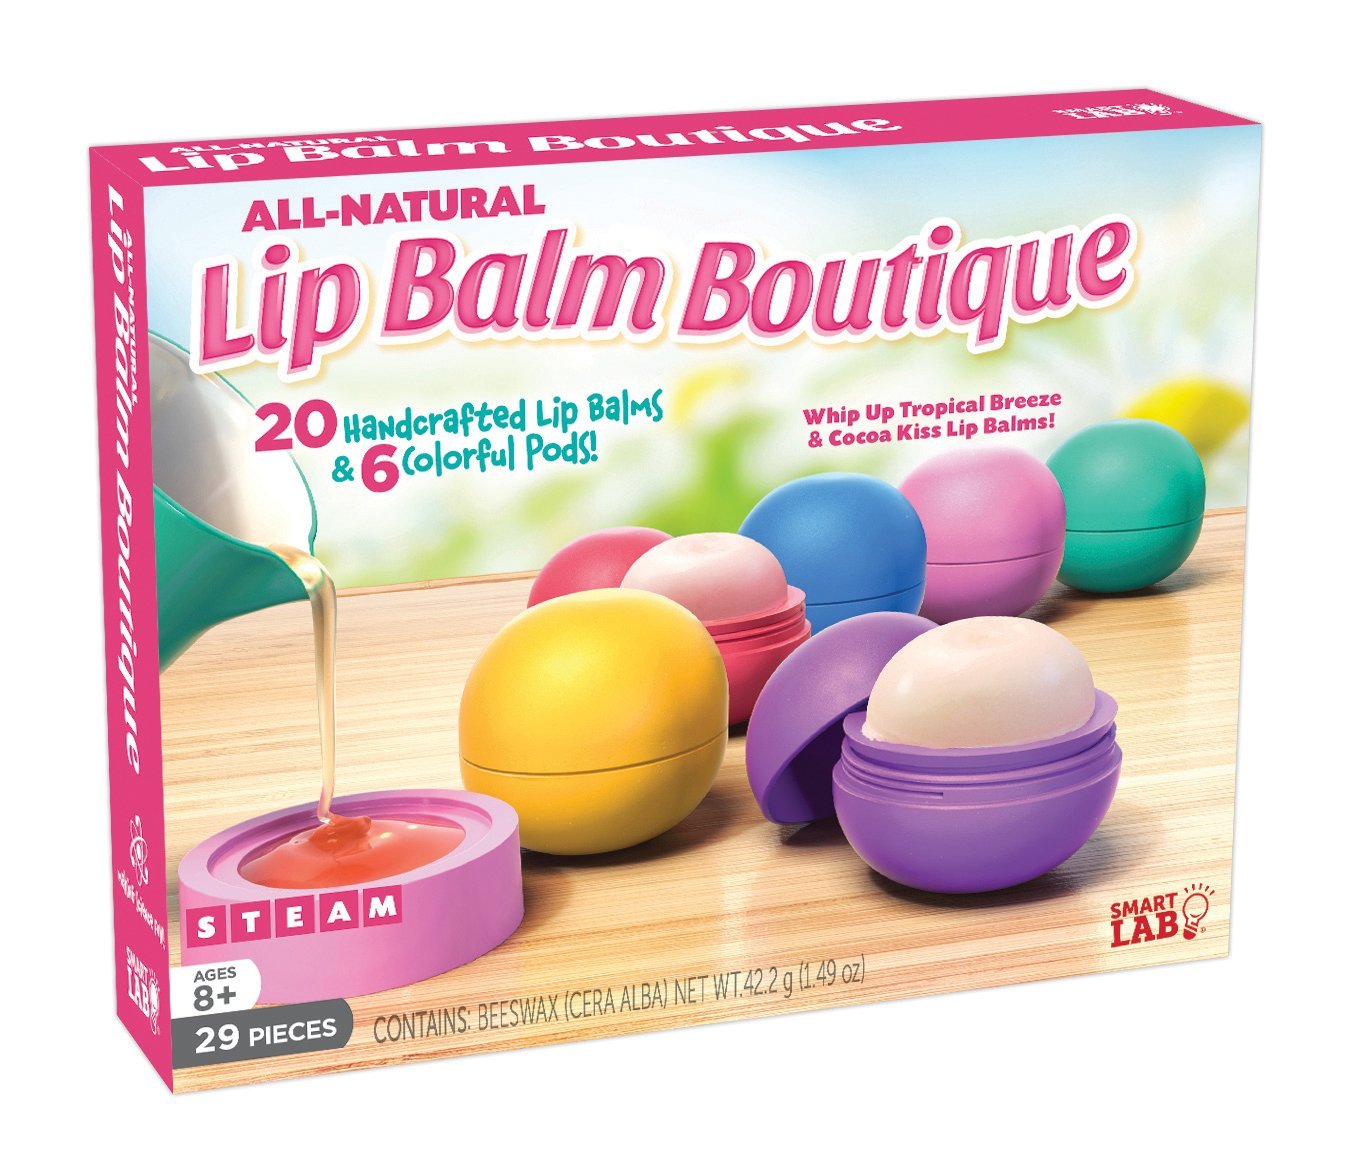 Buy Lip Balm Boutique Now!